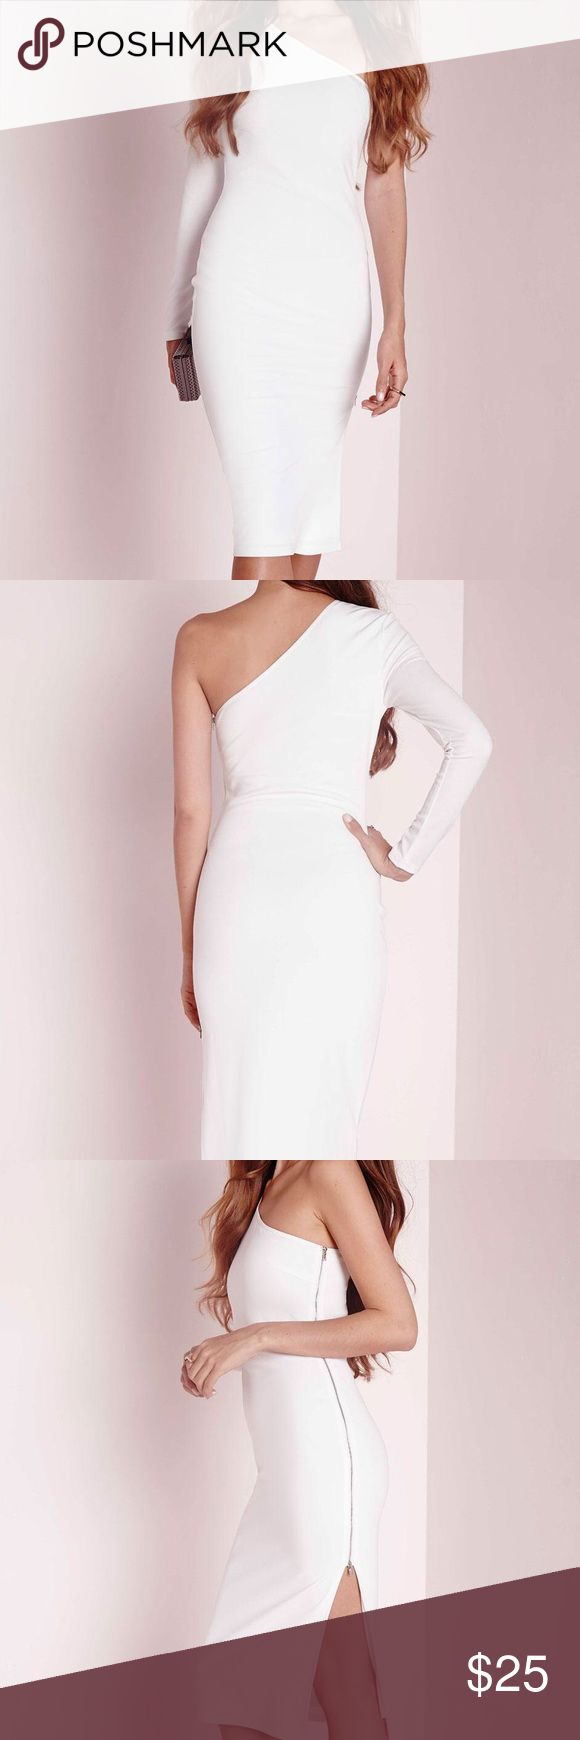 Missguided One Shoulder White Dress Missguided One Shoulder Zip Detail Midi Dress in white (Size: UK 4, EU 32, US 1, AUS 4) Brand New, Never Worn! Missguided Dresses One Shoulder